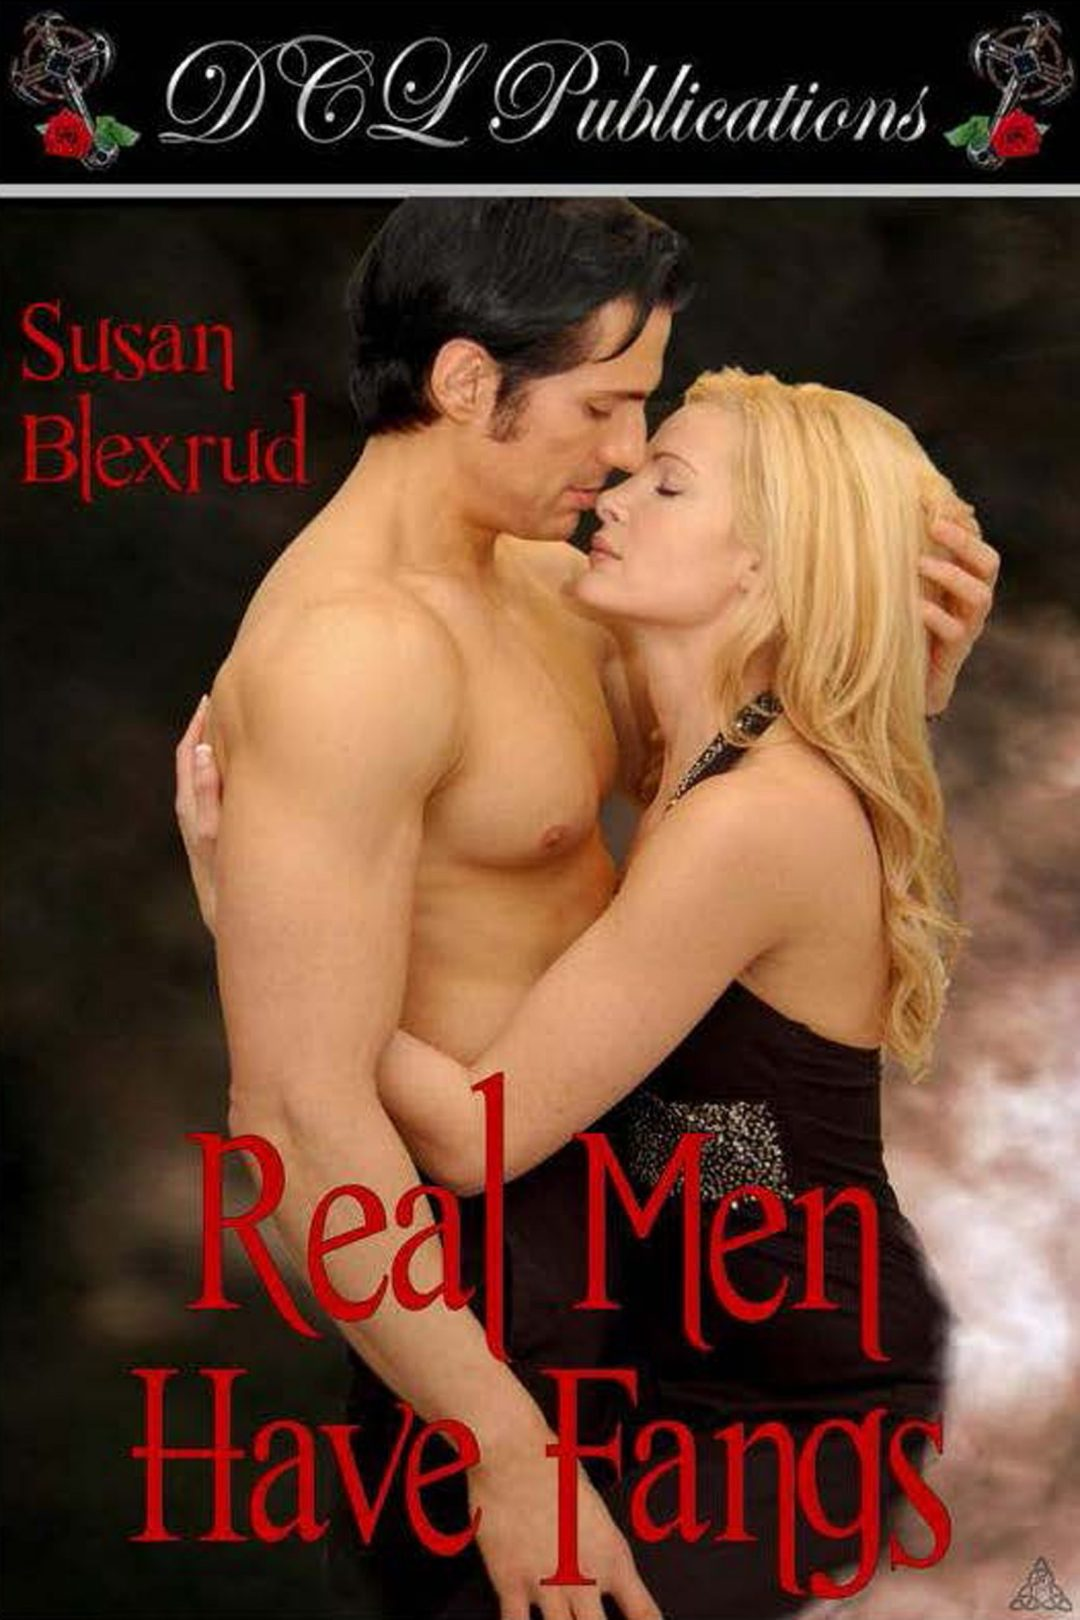 Real Men have Fangs by Susan Blexrud